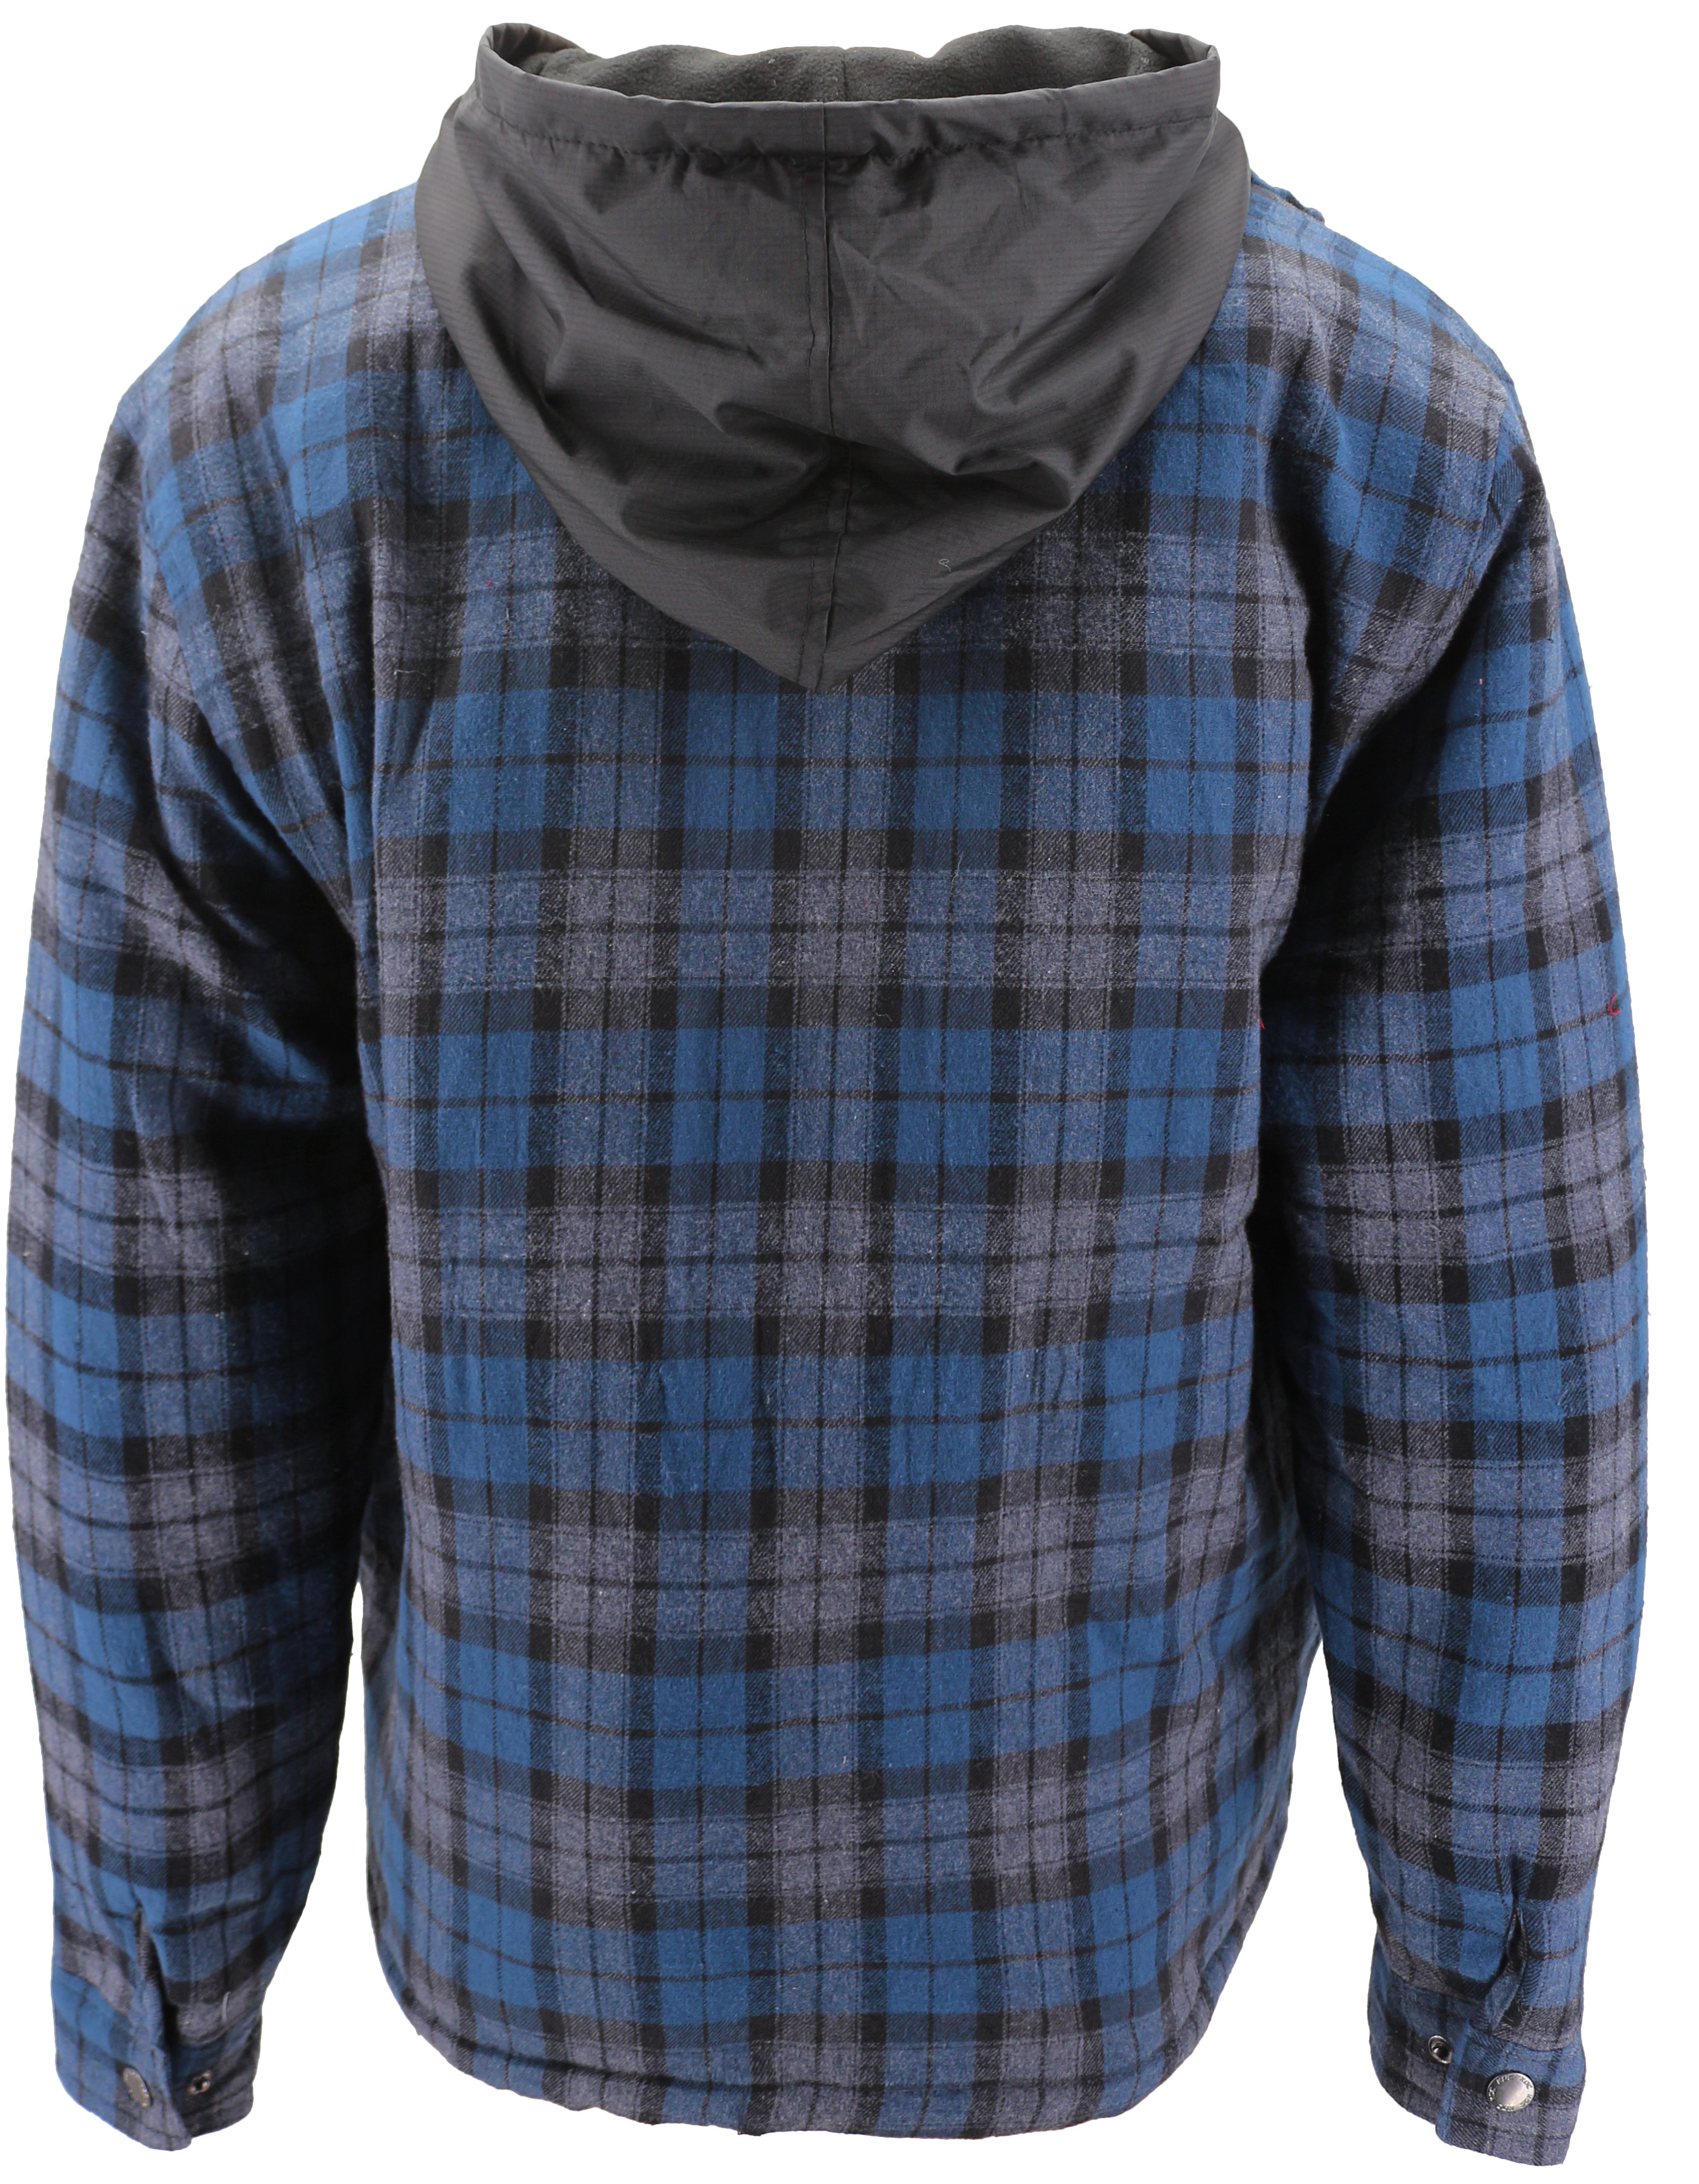 vkwear-Men-039-s-Quilted-Lined-Cotton-Plaid-Flannel-Layered-Zip-Up-Hoodie-Jacket thumbnail 4